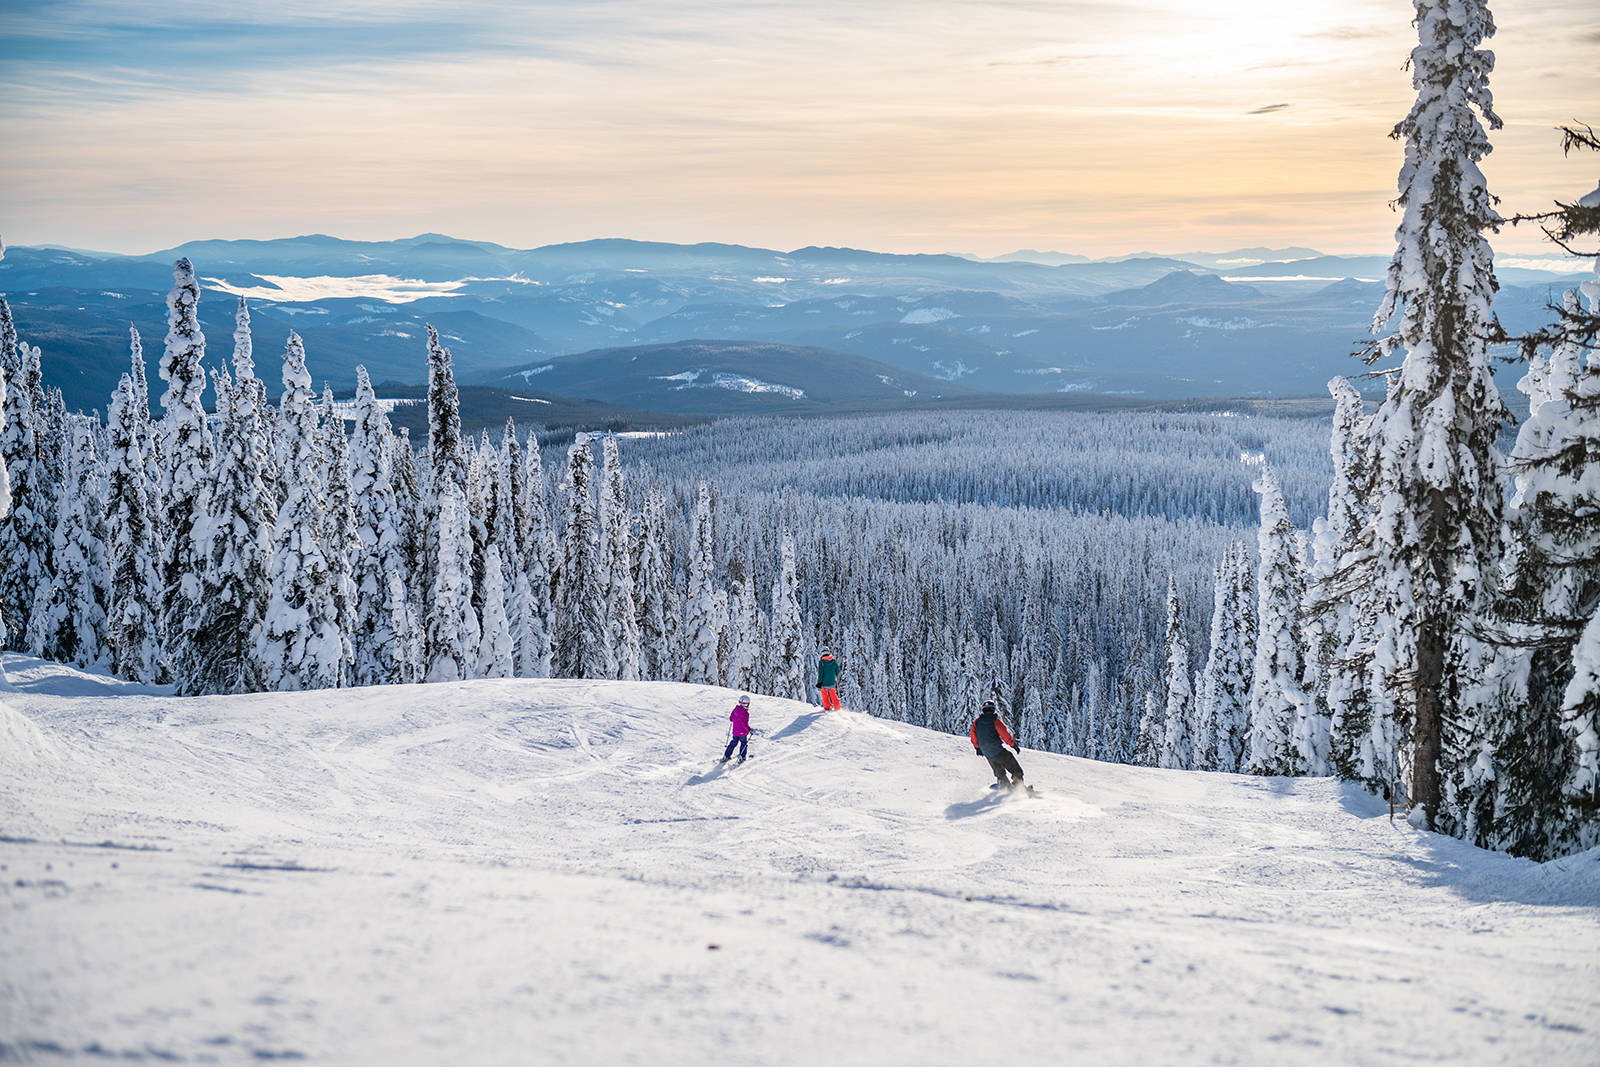 Social activity in homes and accommodation at Big White Ski Resort has resulted in the transmission of COVID-19. (Big White Ski Resort photo)